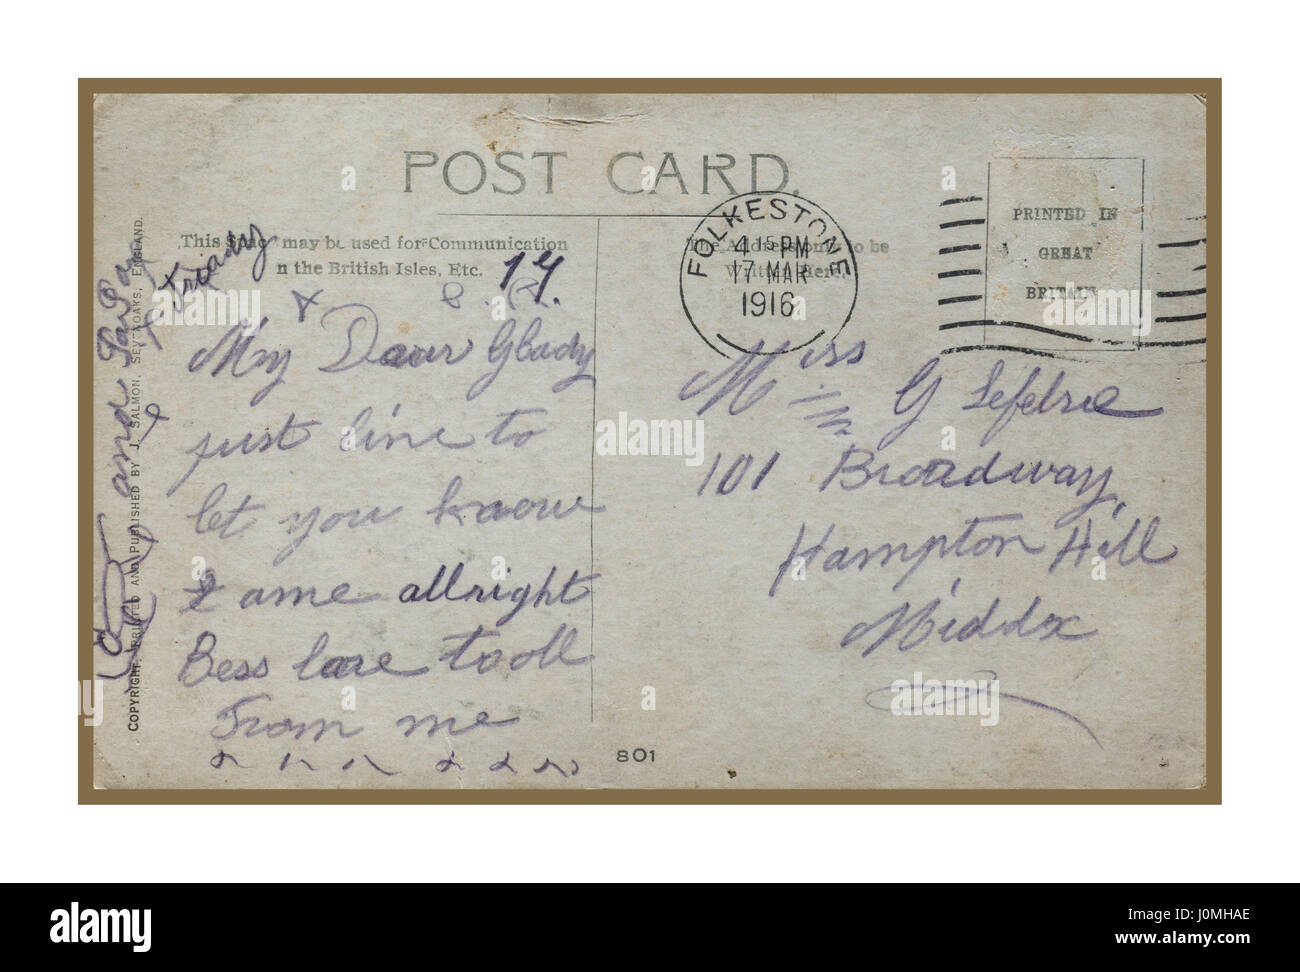 Poignant World War 1 postcard sent last minute in 1916 from Folkestone by British soldier en-route to fight in France - Stock Image